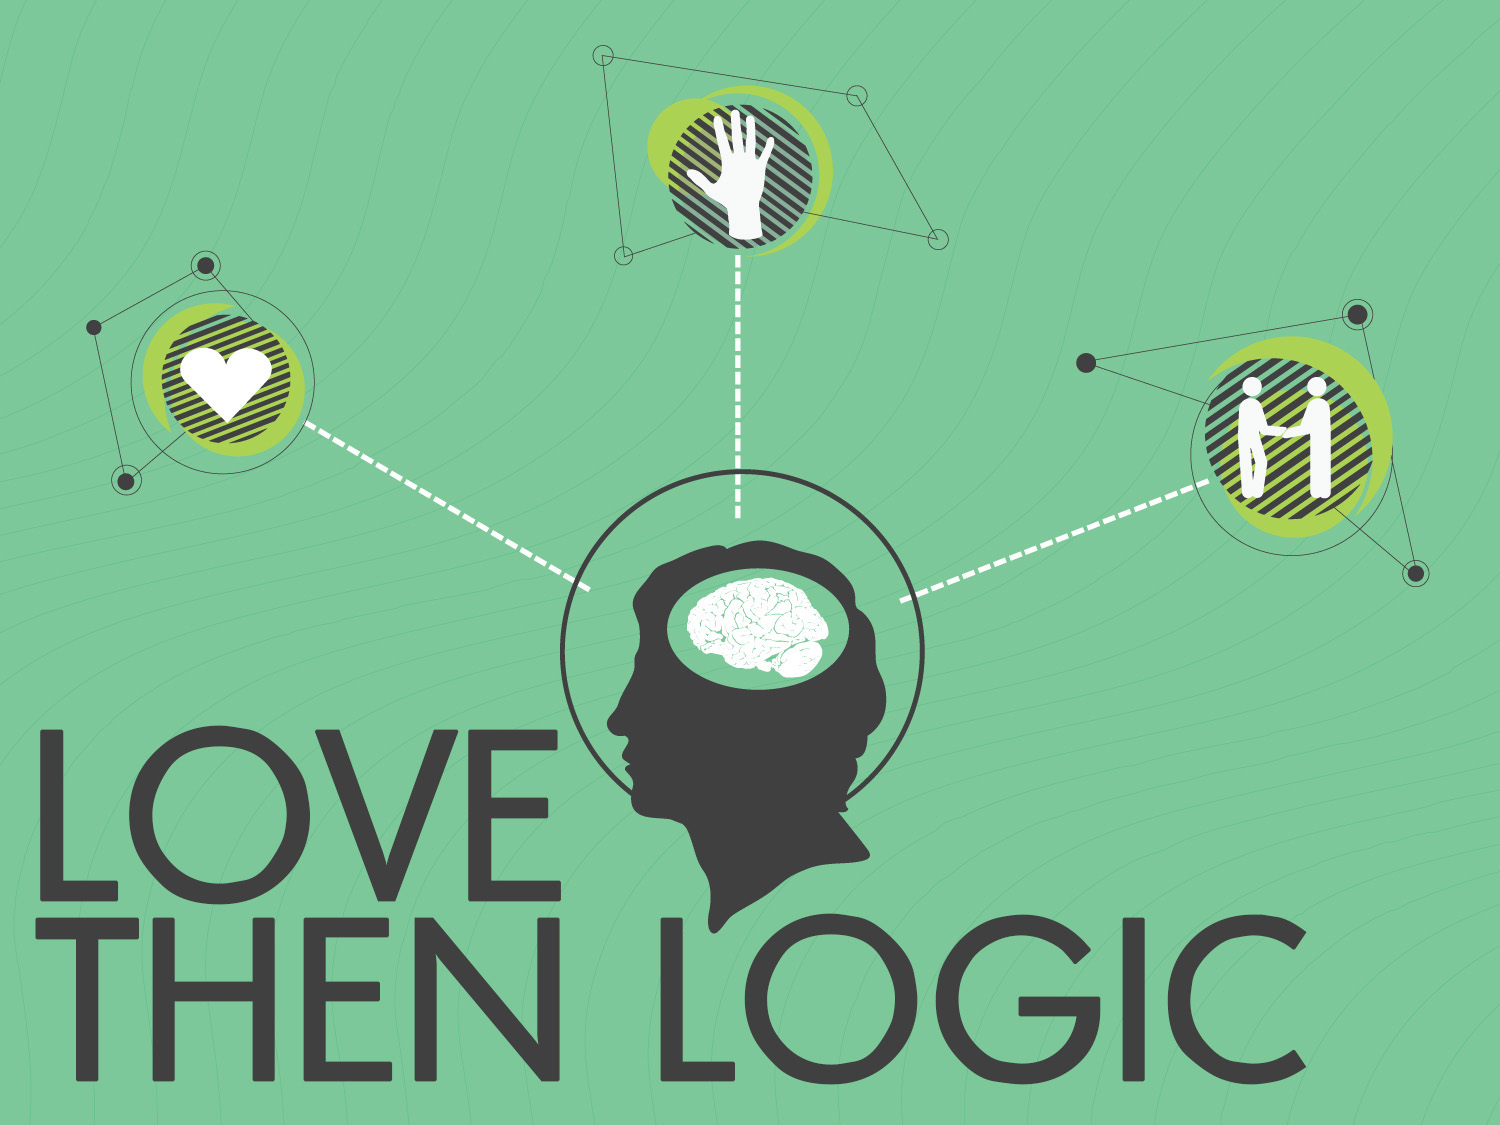 Love And Logic Quotes For Teachers. QuotesGram